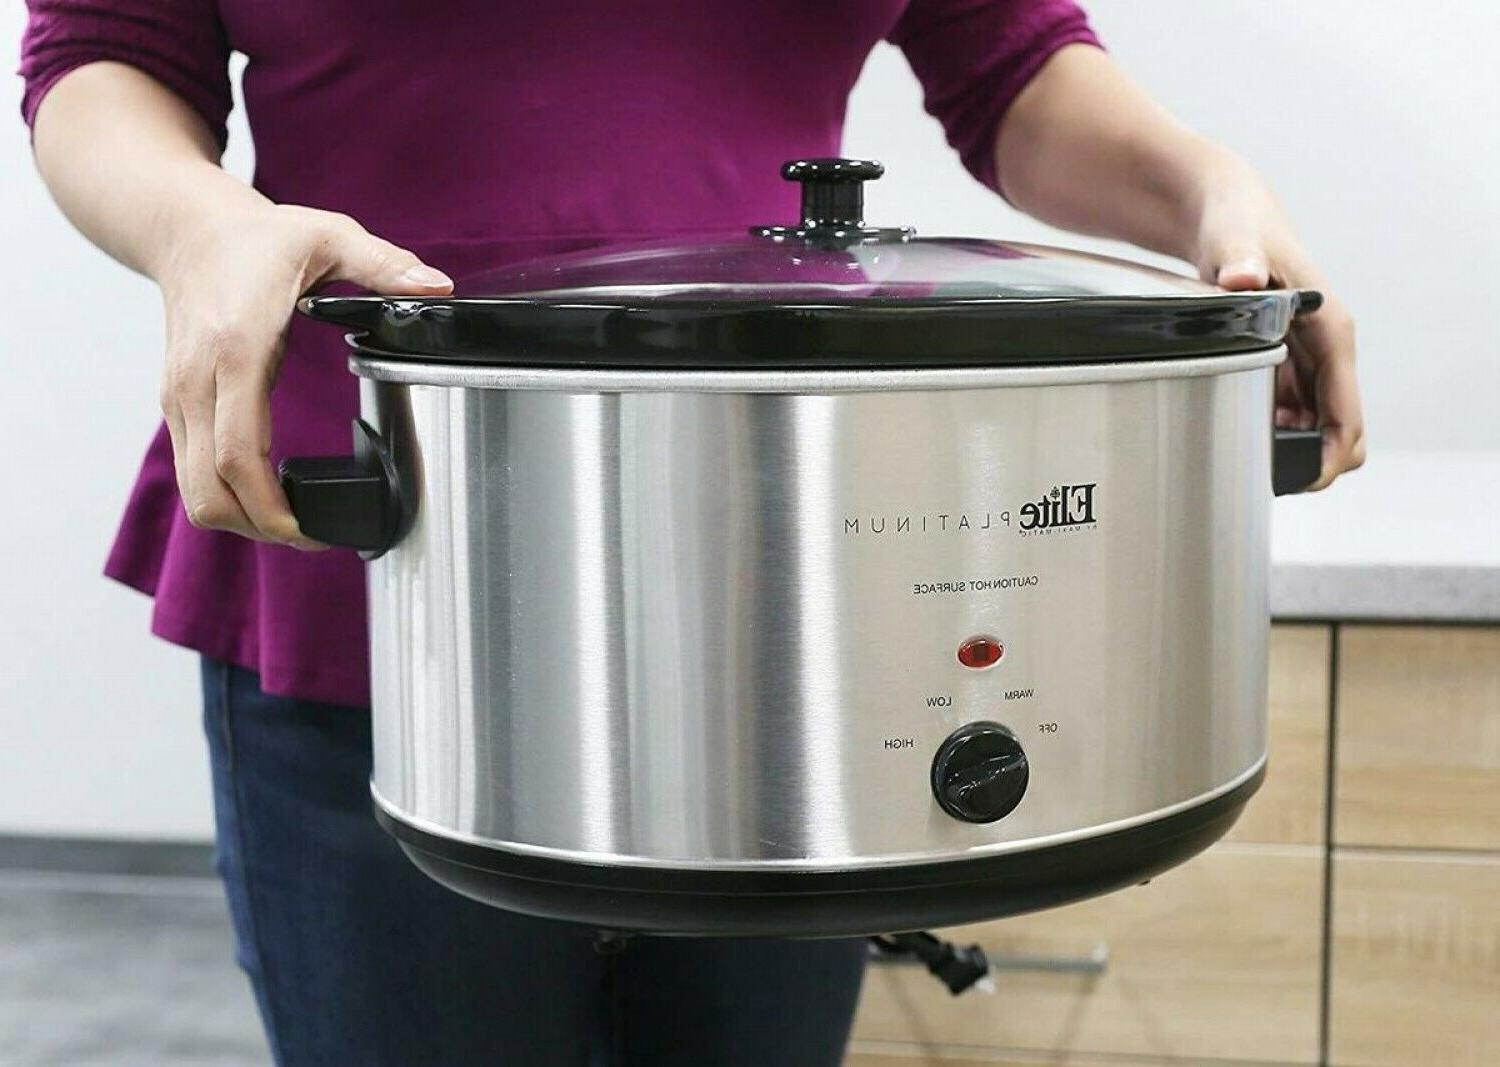 8.5 Quart Cooker Oval Stainless Steel